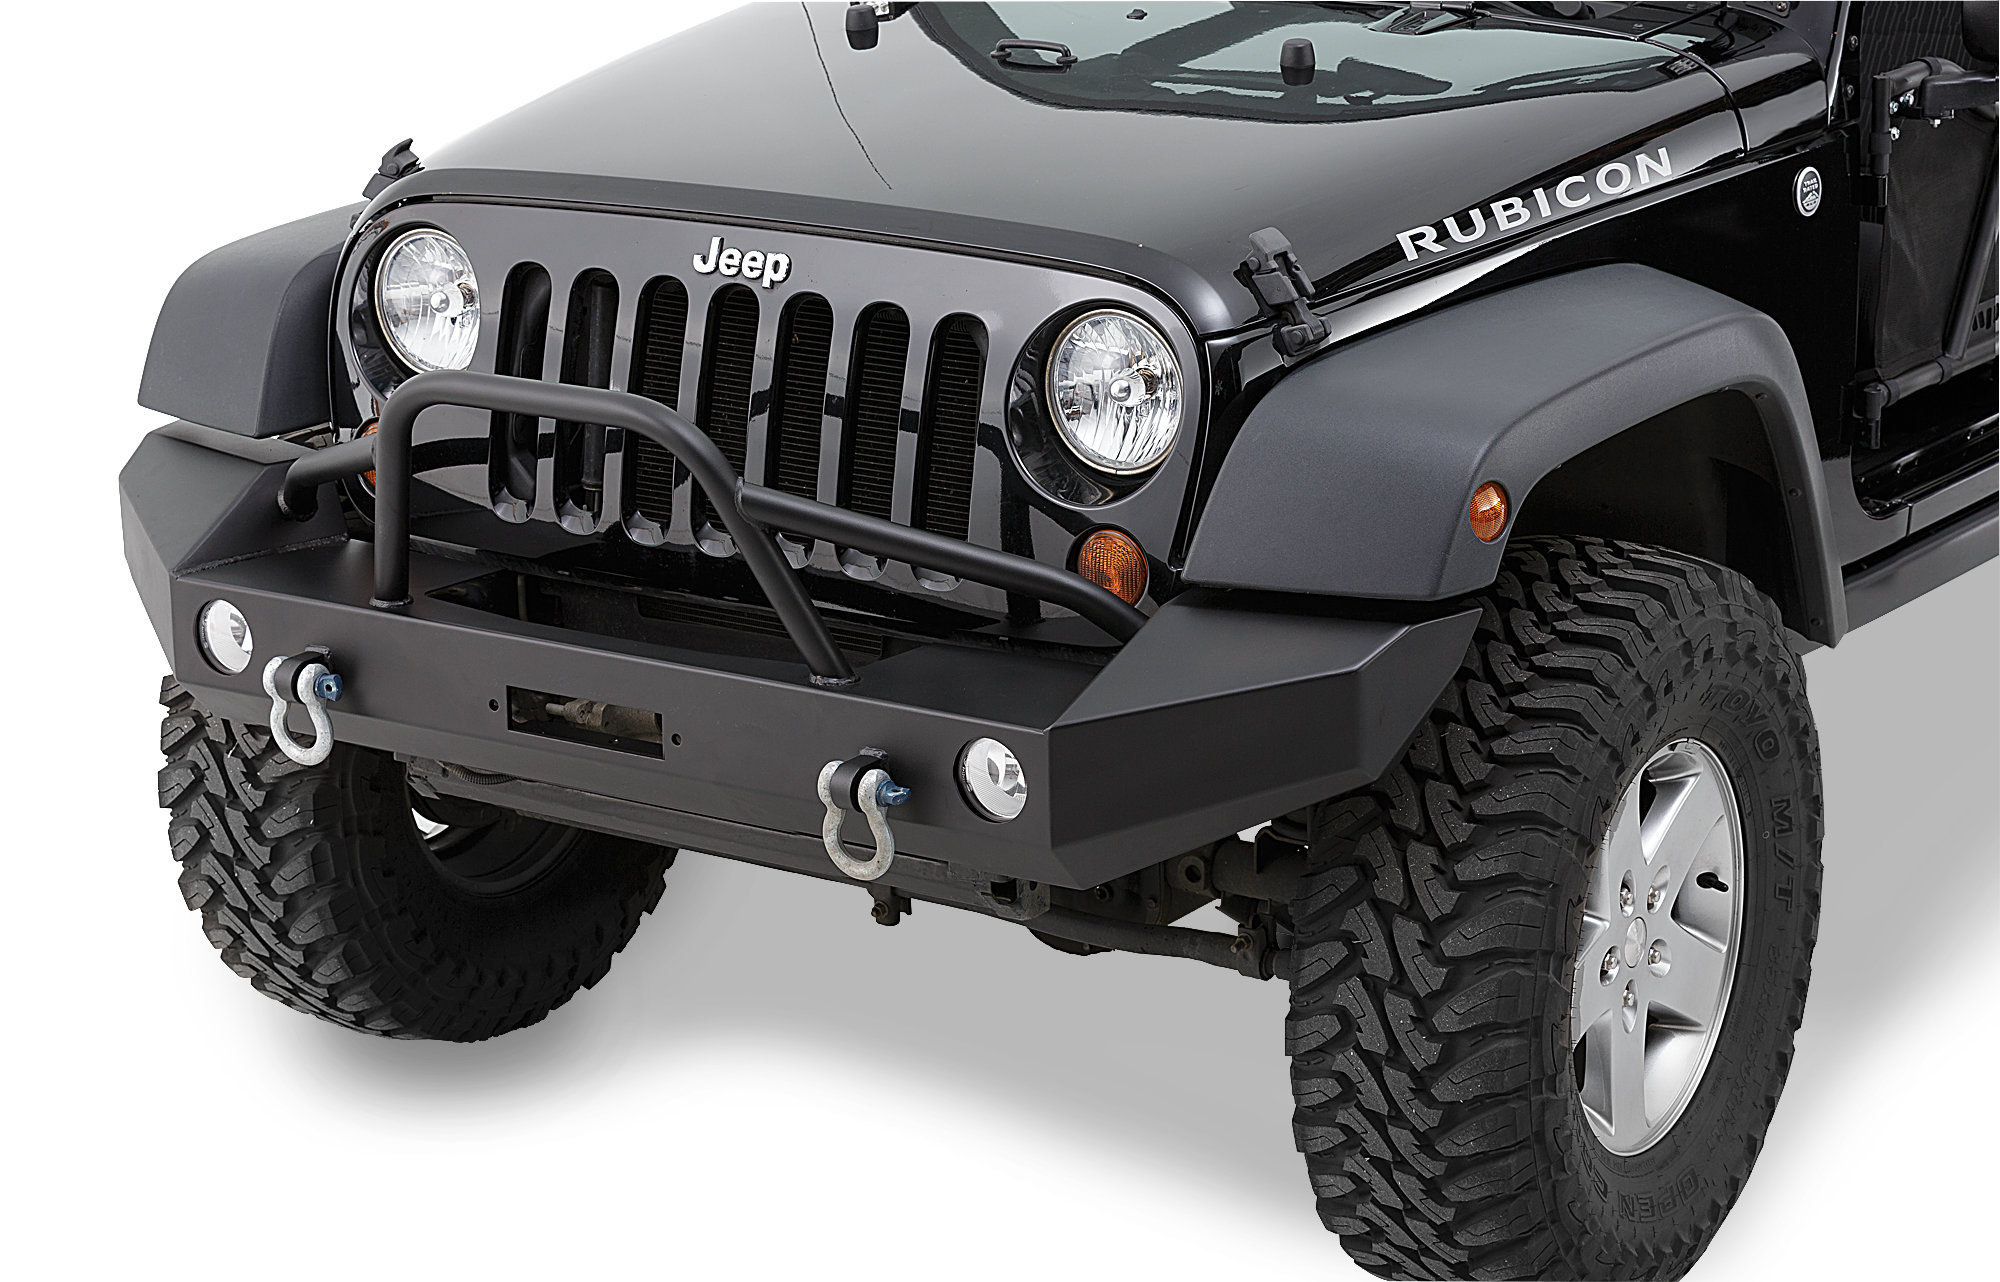 Jeep Wrangler Tj Engine Diagram Jeep Wrangler Unlimited Jeep Wrangler